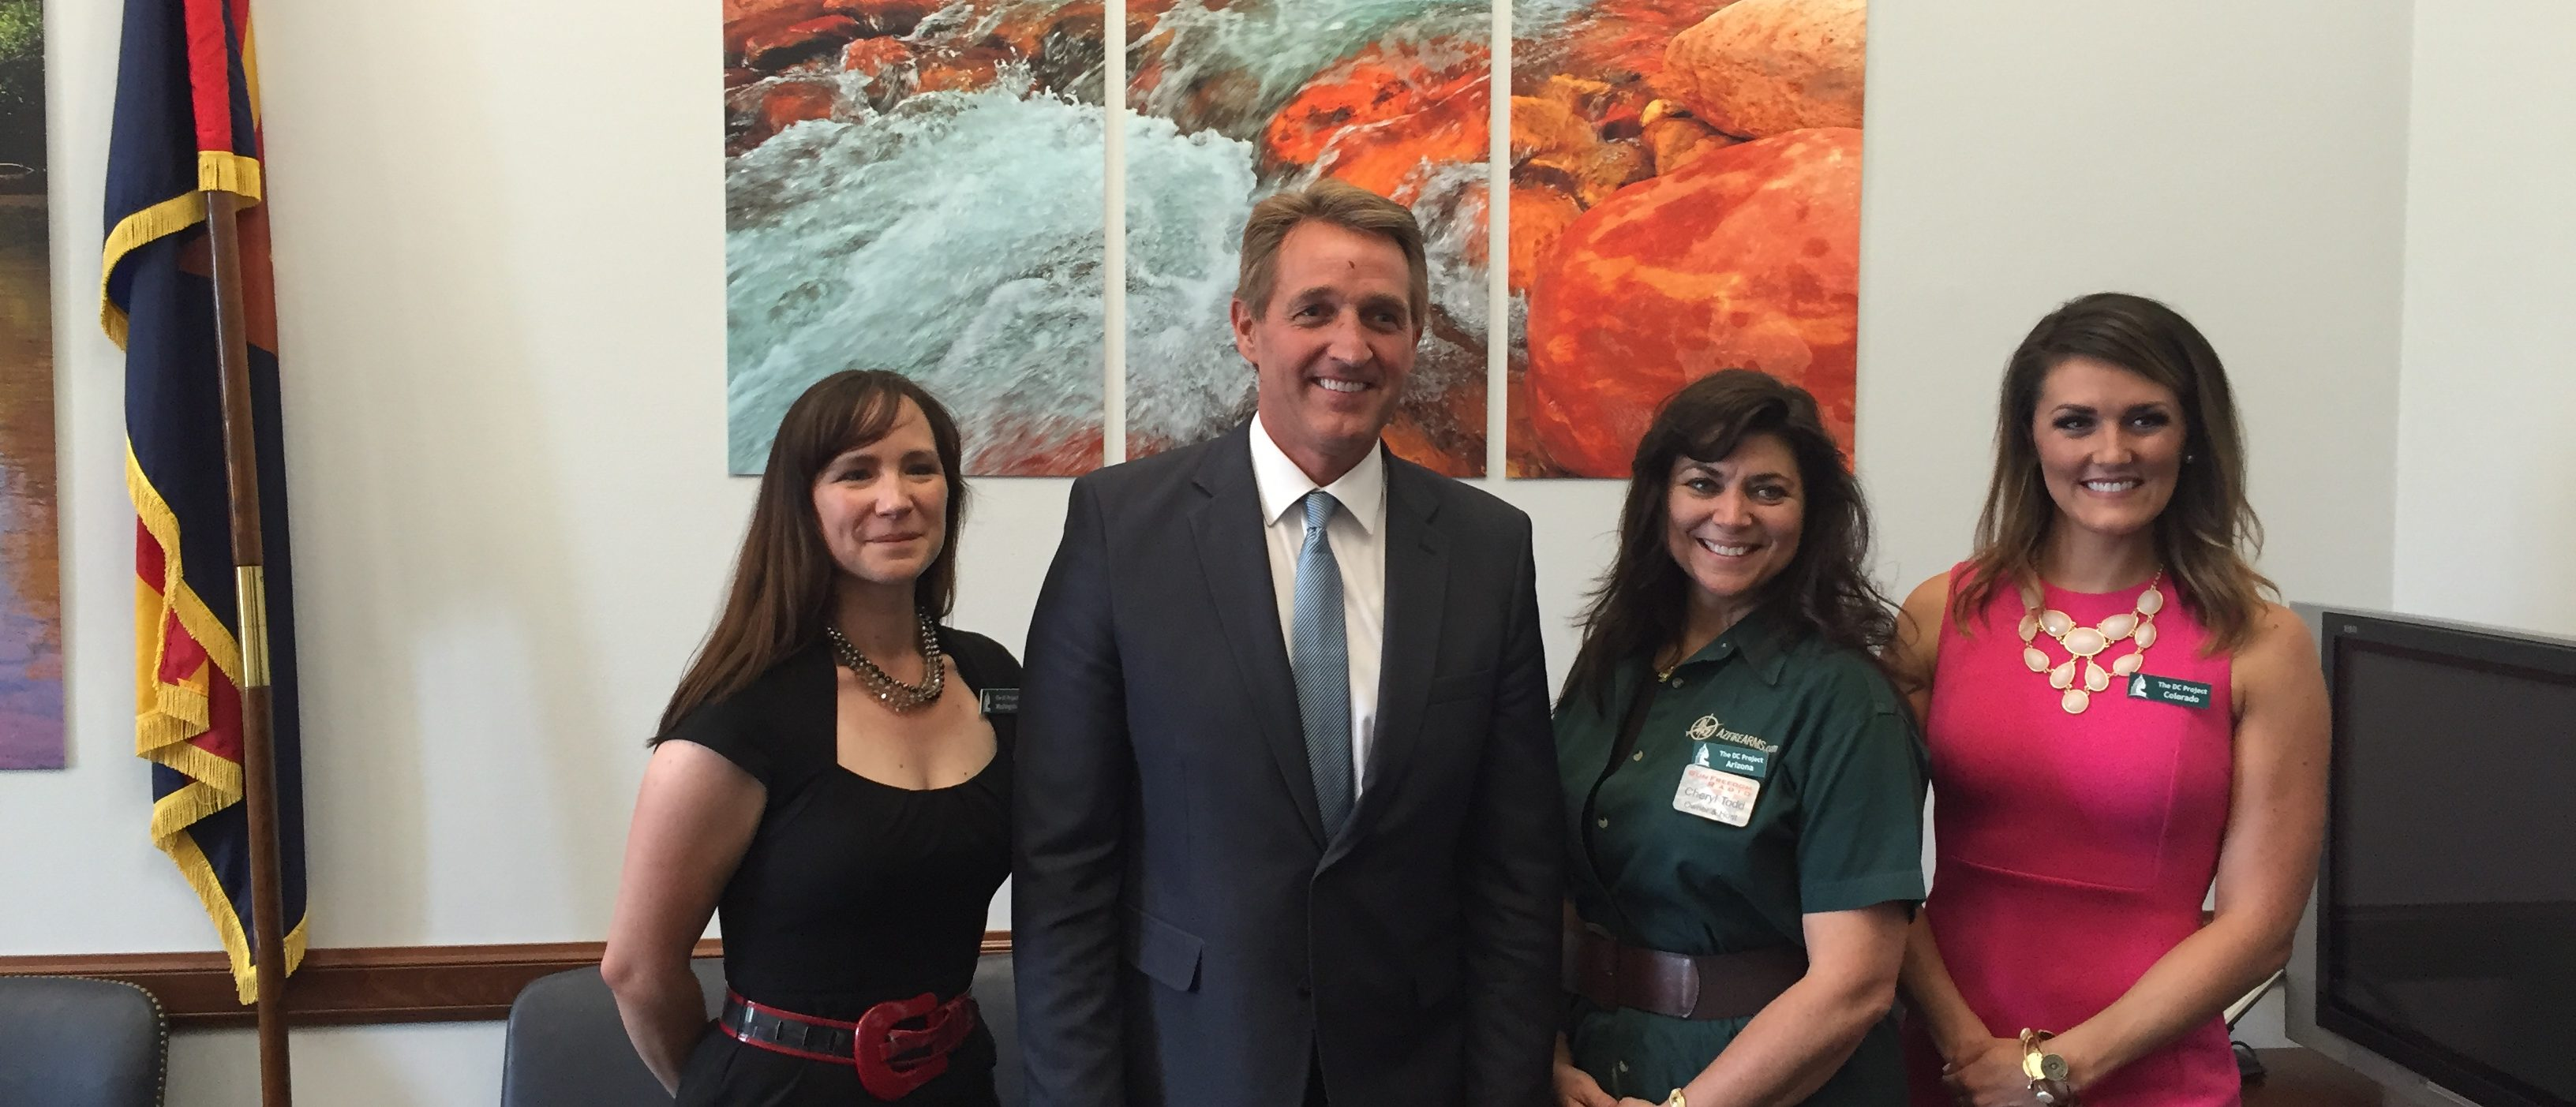 Katy Brown (WA), AZ Senator Jeff Flake, Cheryl Todd (AZ), Kimberly Corban (CO)